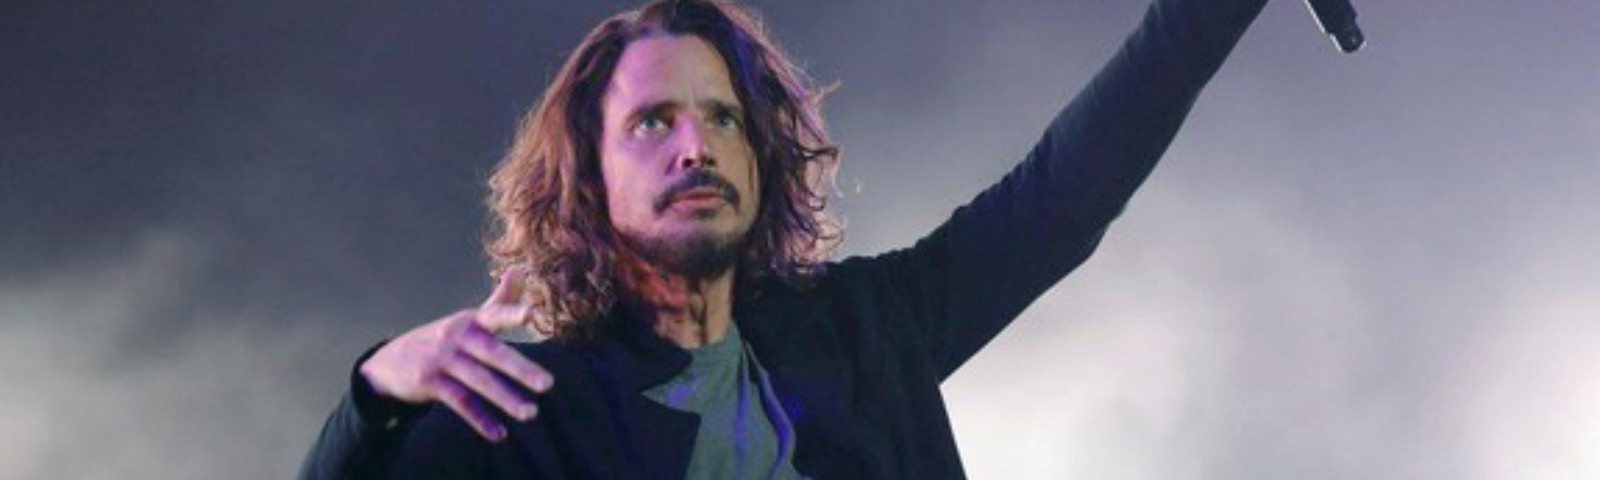 Suicidal Thoughts The Troubling Lyrics Of Chris Cornell